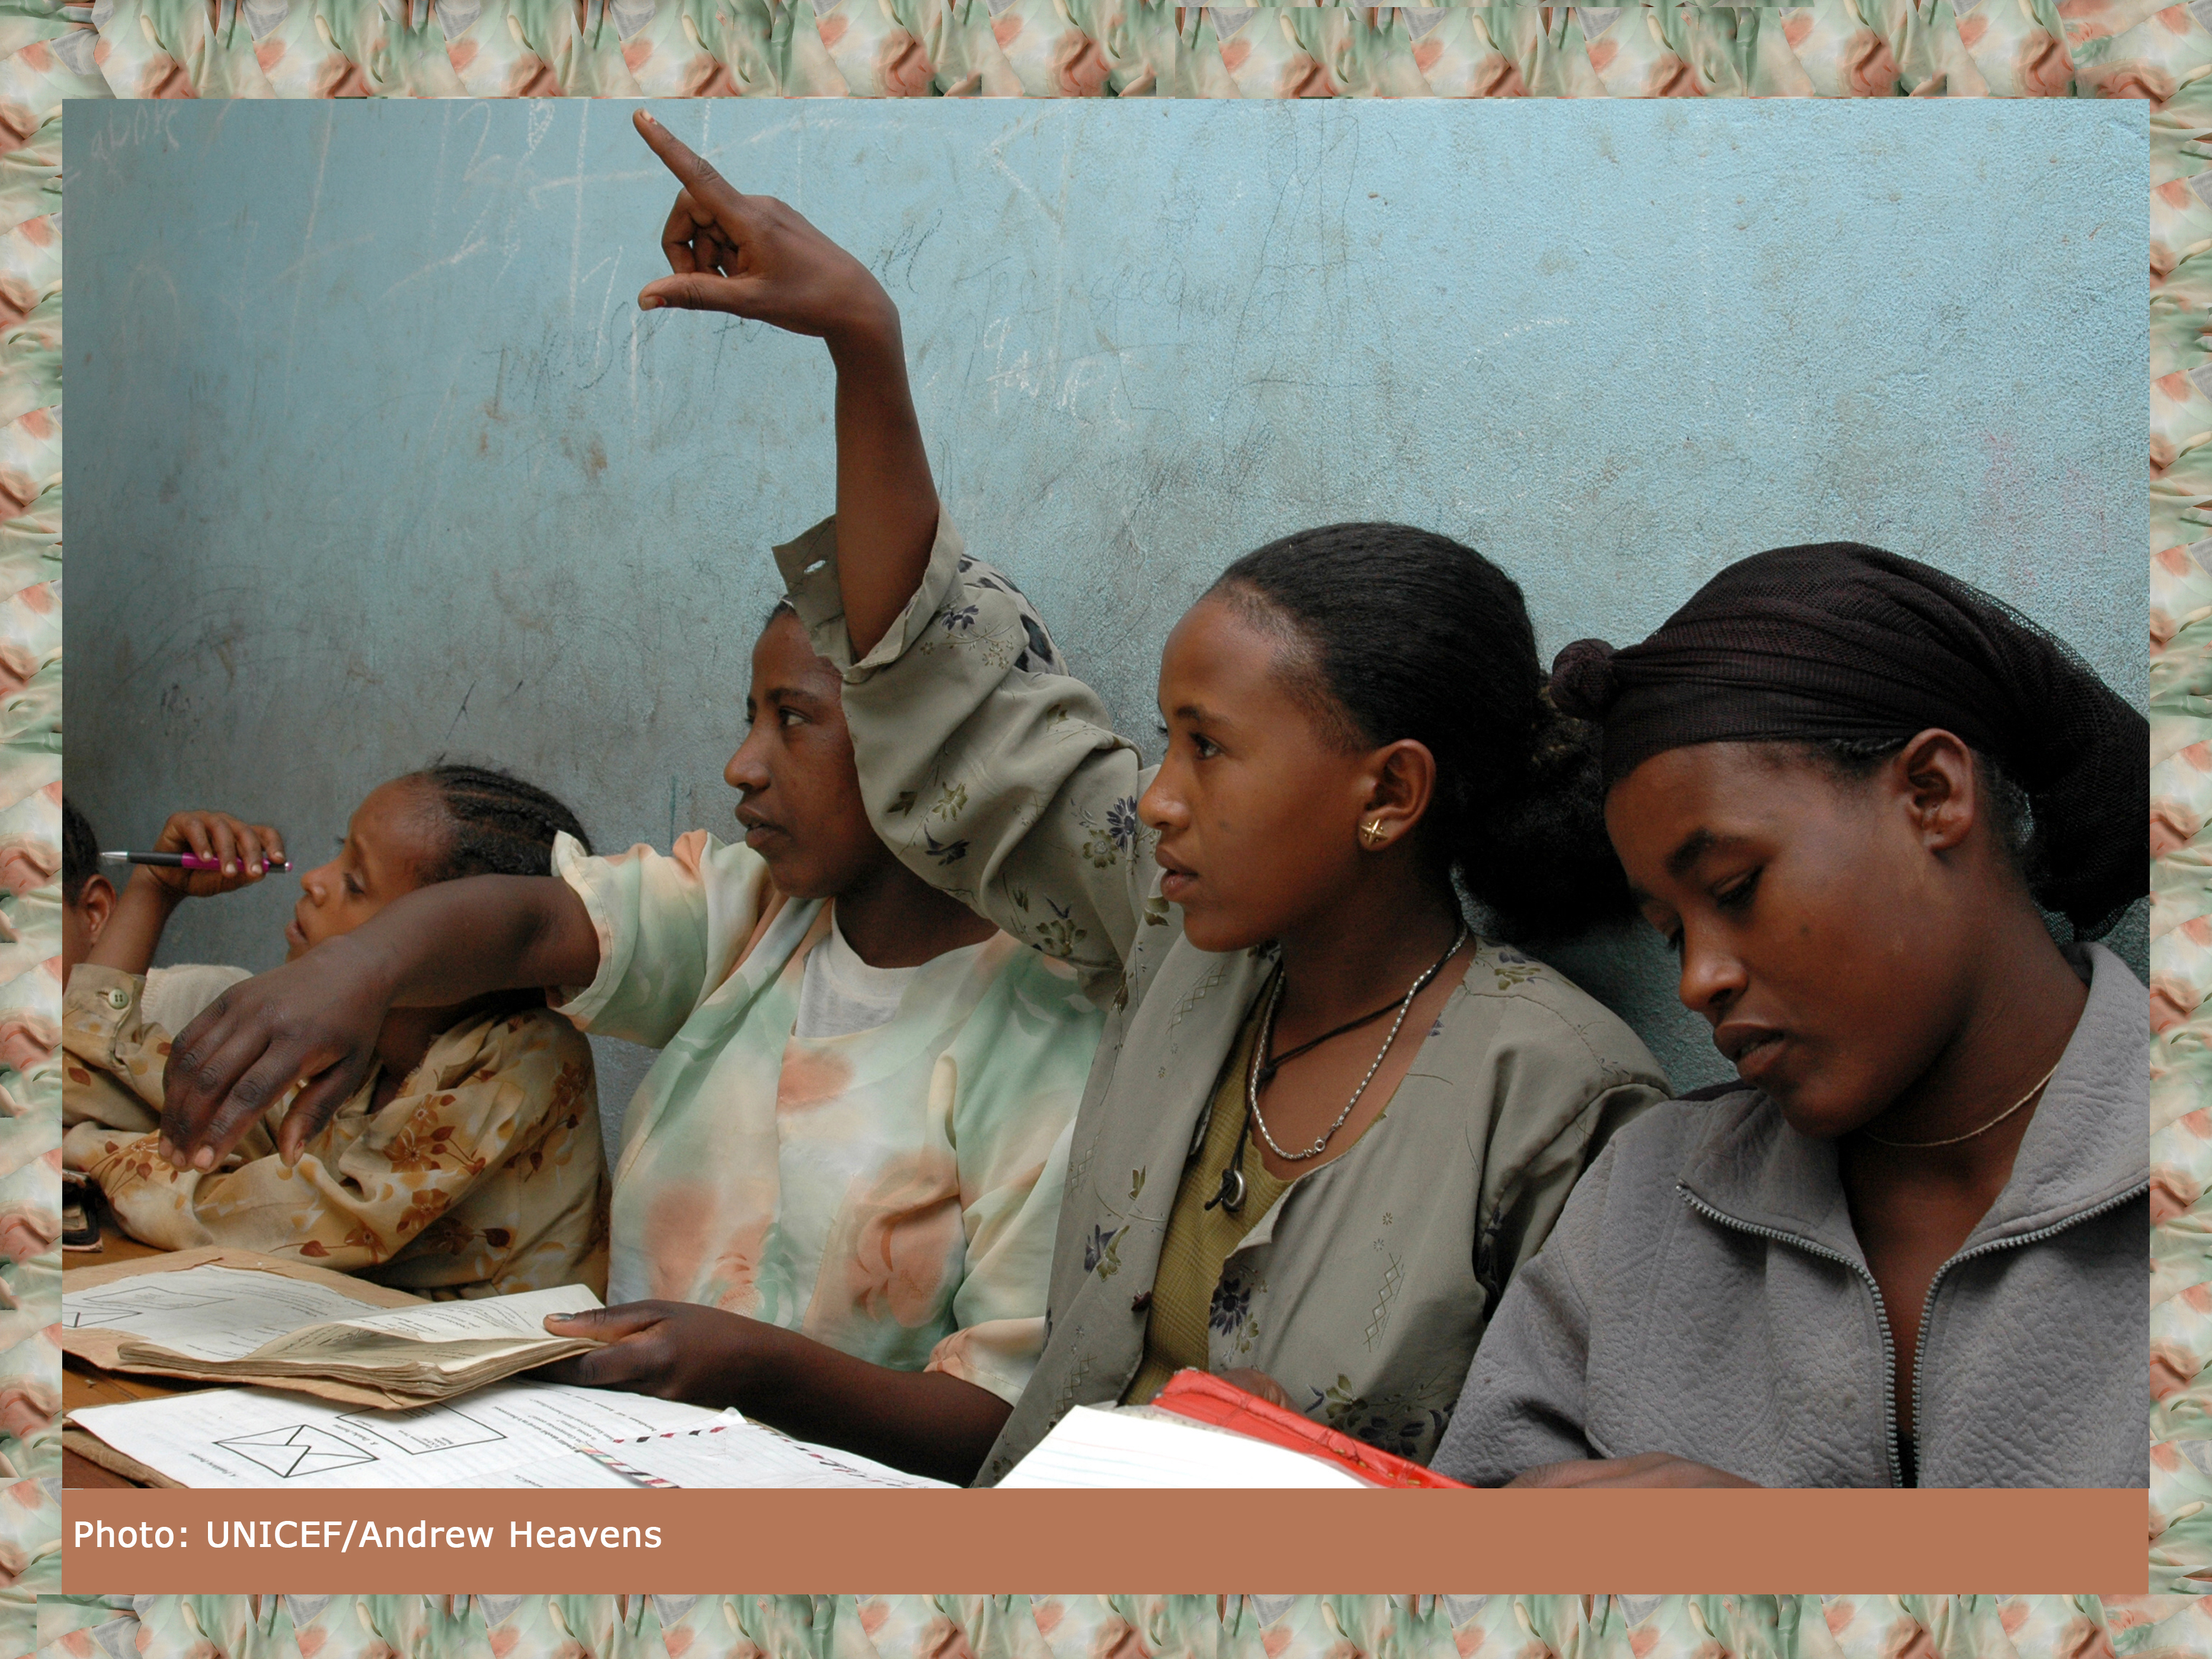 In Ethiopia, Mulu Melka, 13, raises her hand to answer a question in school.